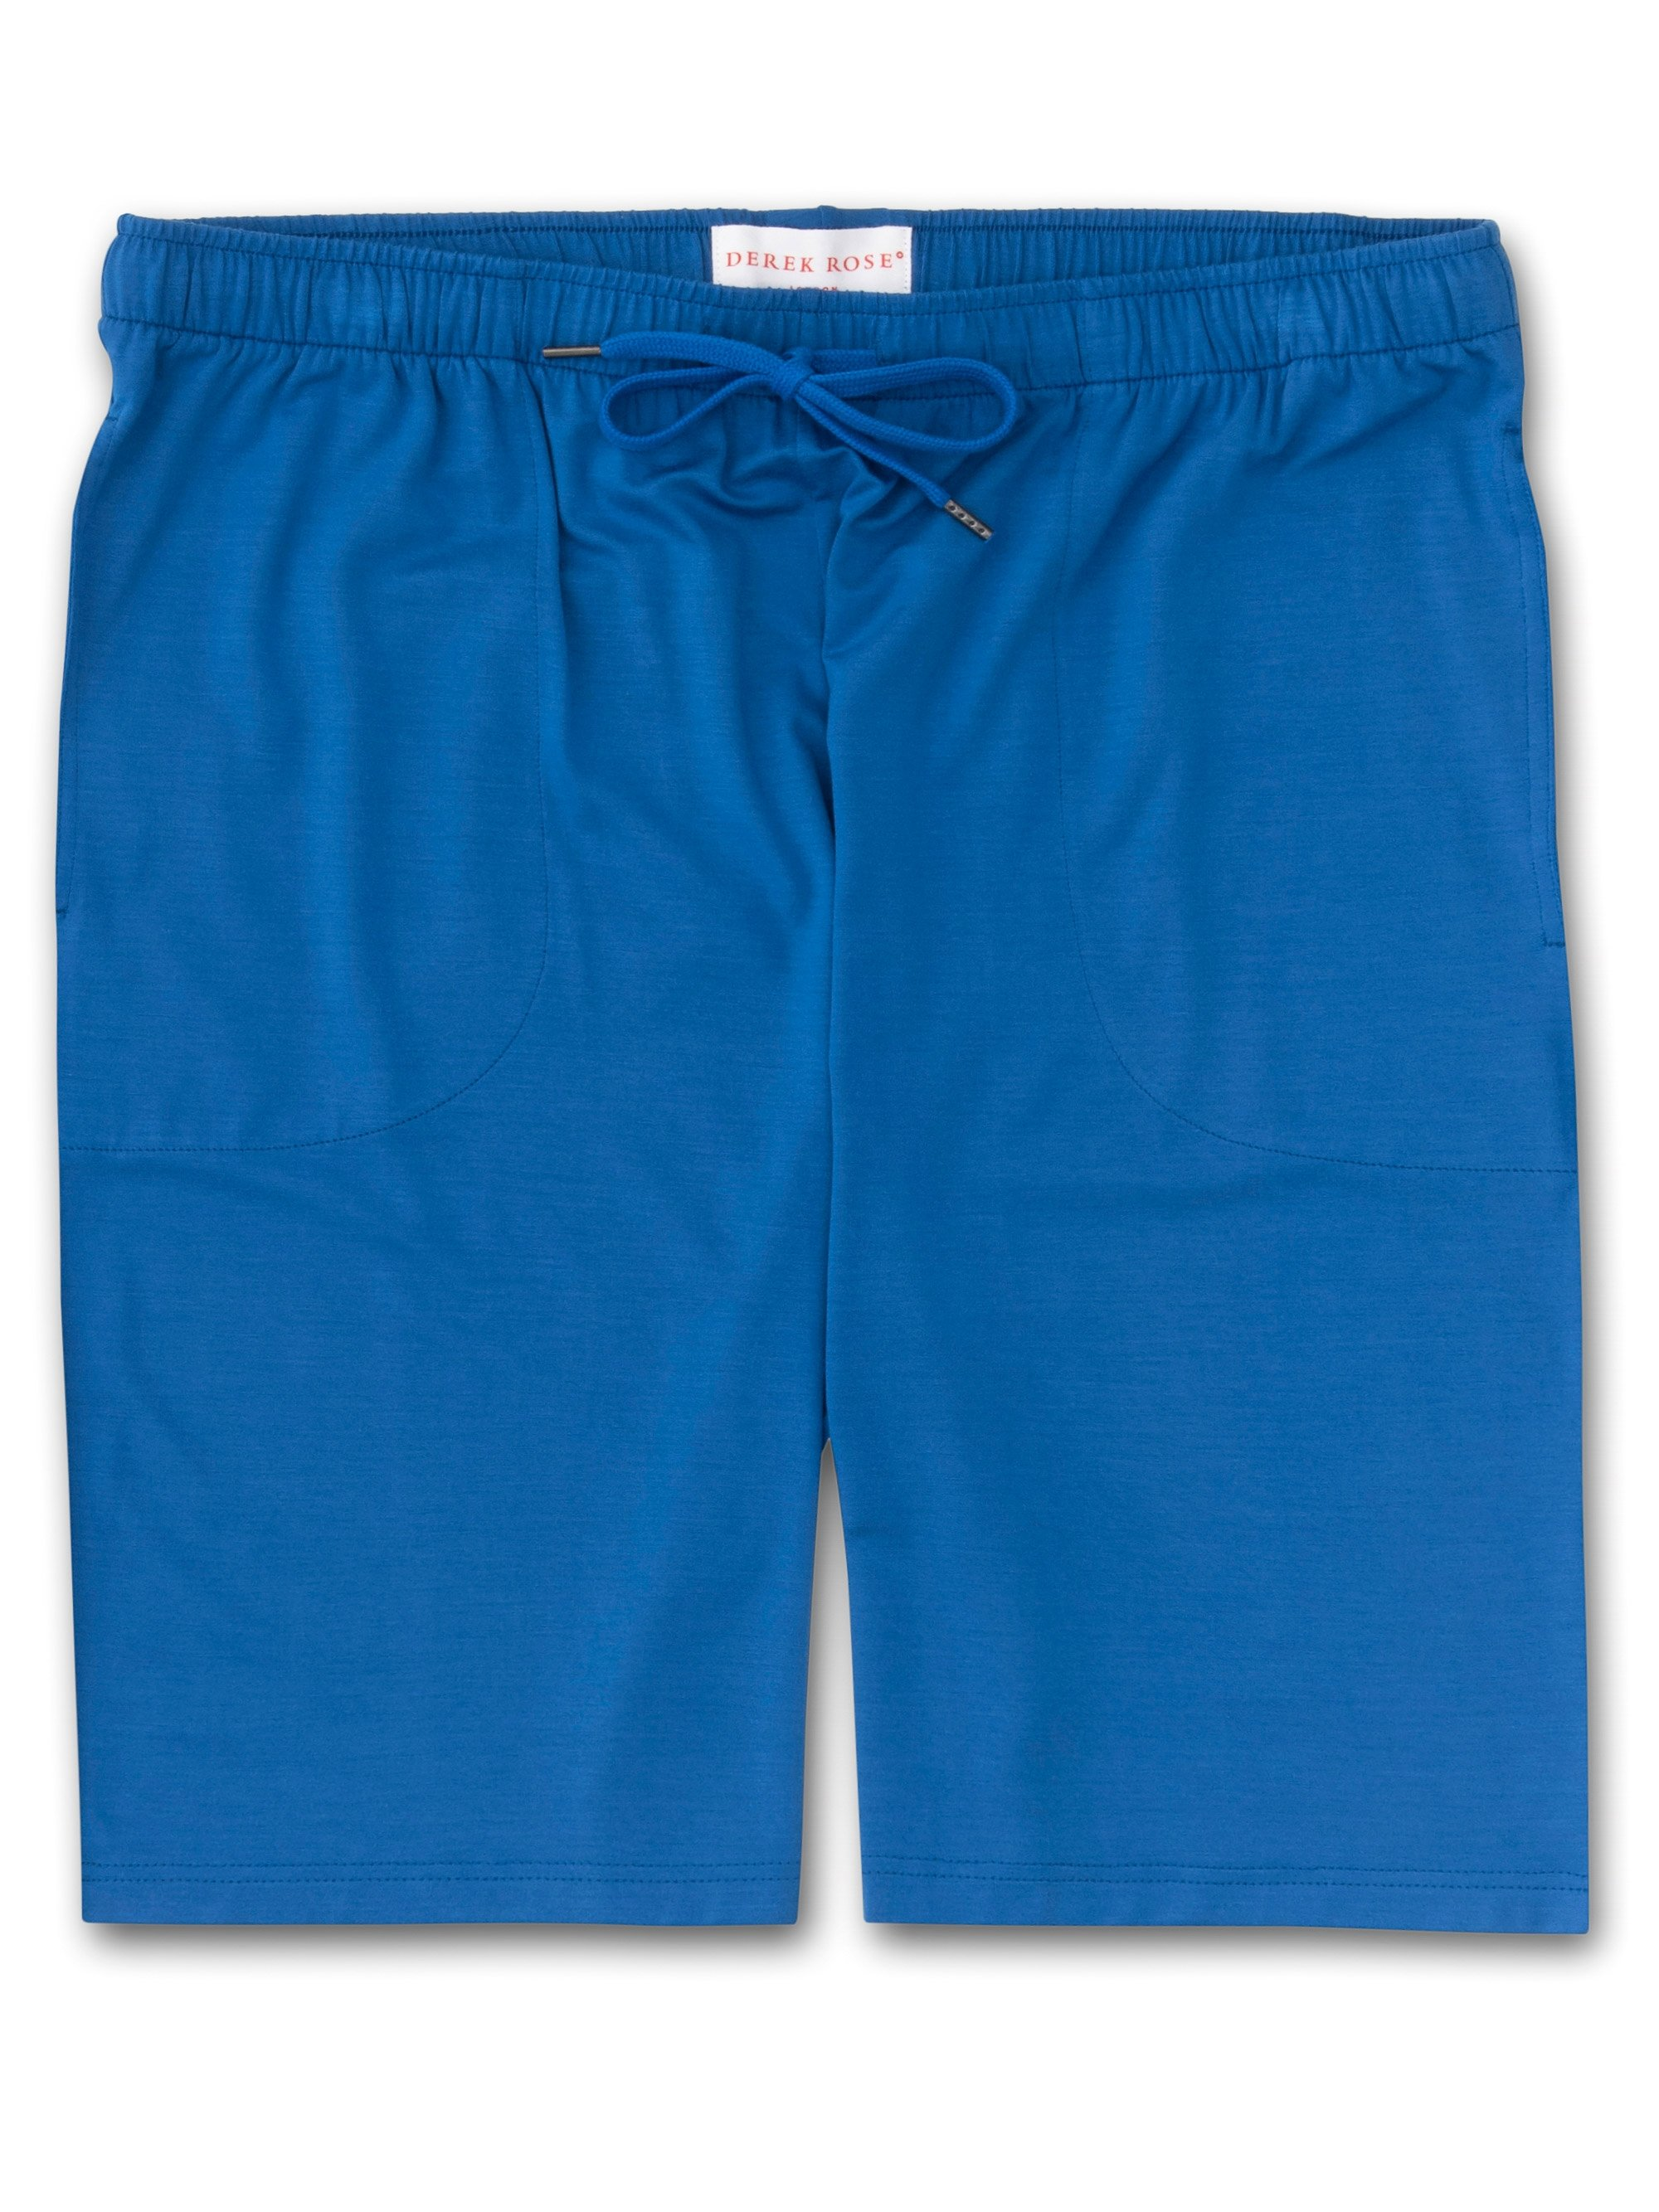 Men's Jersey Shorts Basel 8 Micro Modal Stretch Blue